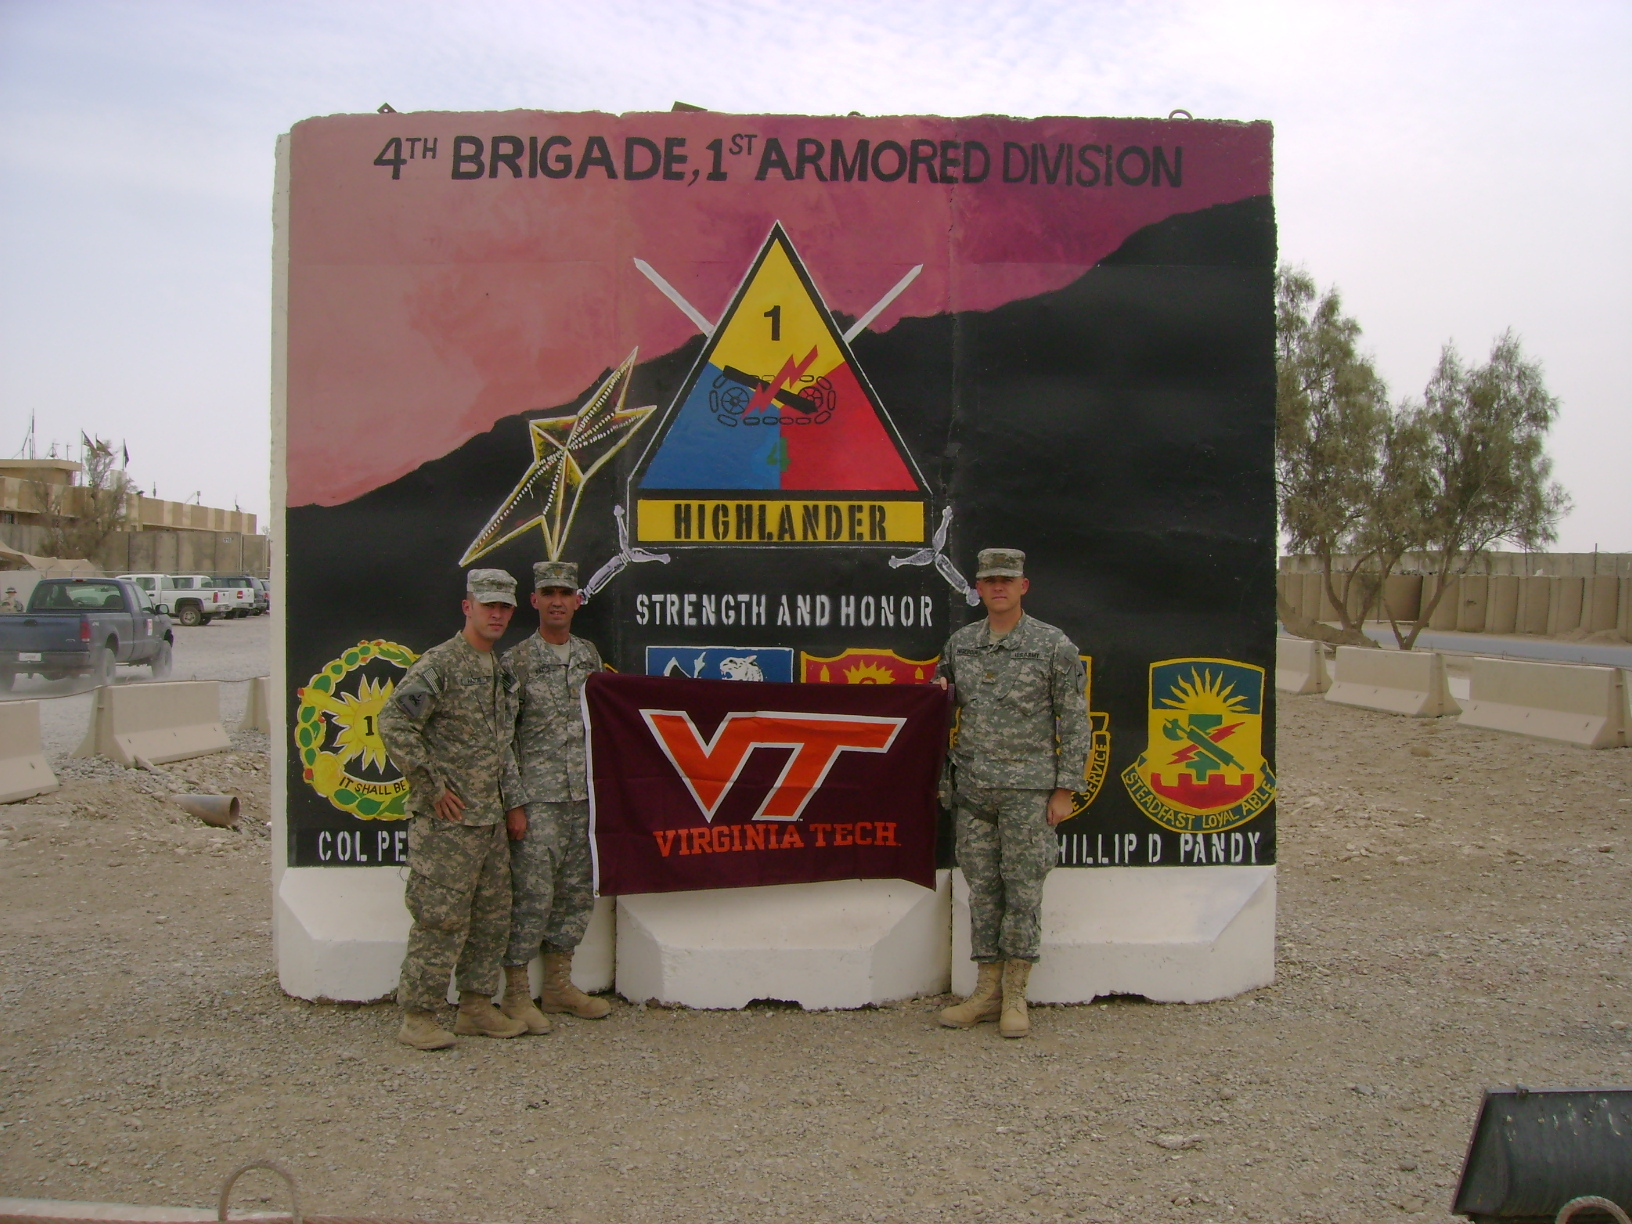 Hogeboom (right) with brothers 1st Lt. Antonio Pazos, member of Virginia Tech Corps of Cadets Class of 2007 who majored in civil engineering in the College of Engineering (left), and Maj. Rafael Pazos, member of Virginia Tech Corps of Cadets Class of 1993 who majored in mechanical engineering also in the College of Engineering (center) pictured outside the 4th Brigade Combat Team, 1st Armored Division Headquarters, COB Adder, Iraq.